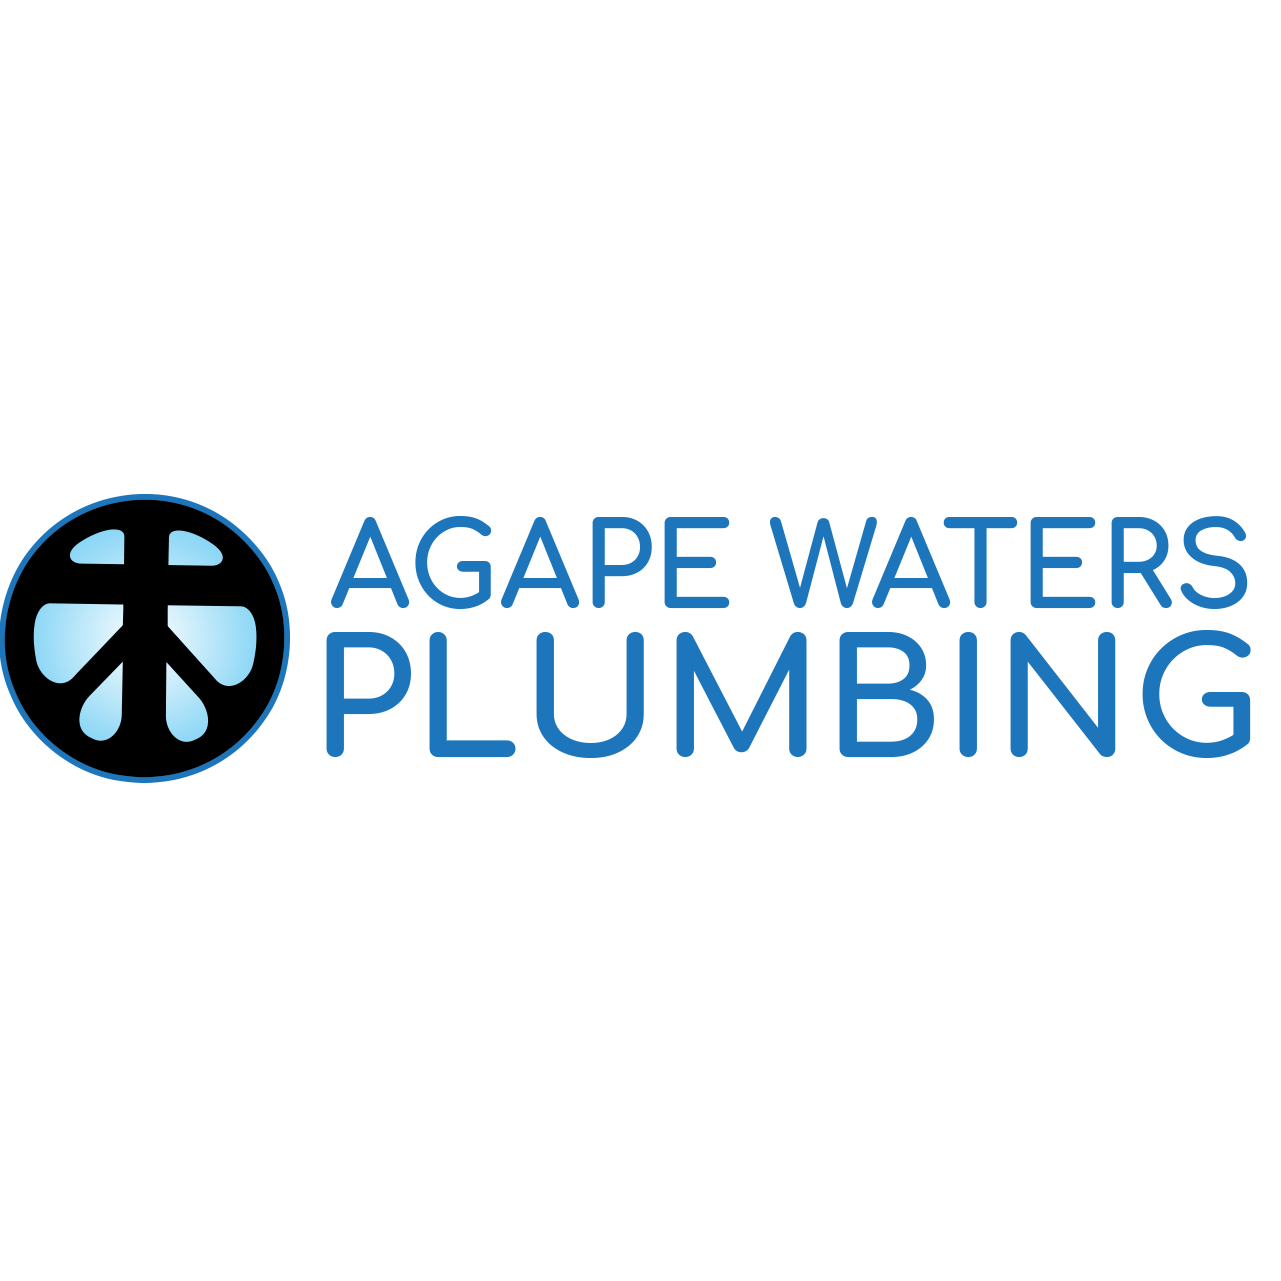 Agape Waters - Water Filtration and Tankless Water Heaters